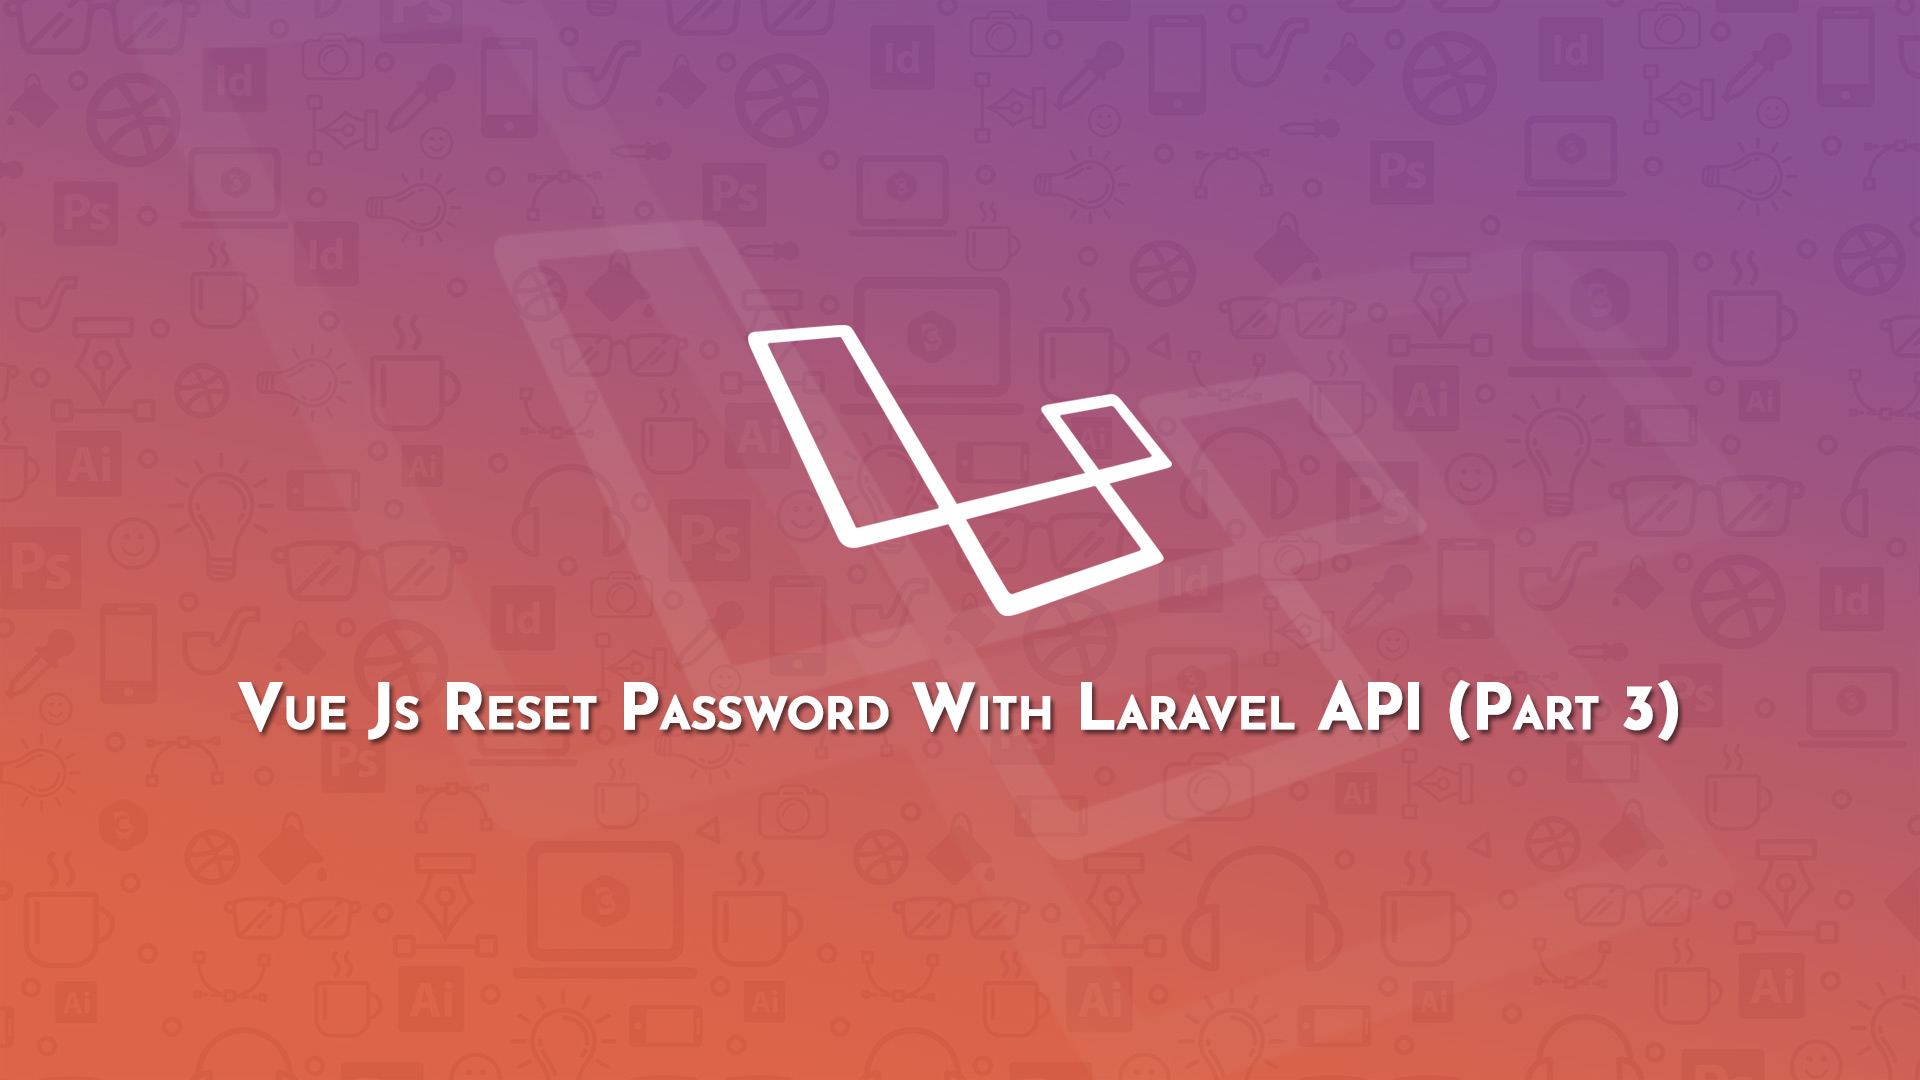 Vue Js Reset Password With Laravel API (Part 3) - Code Briefly